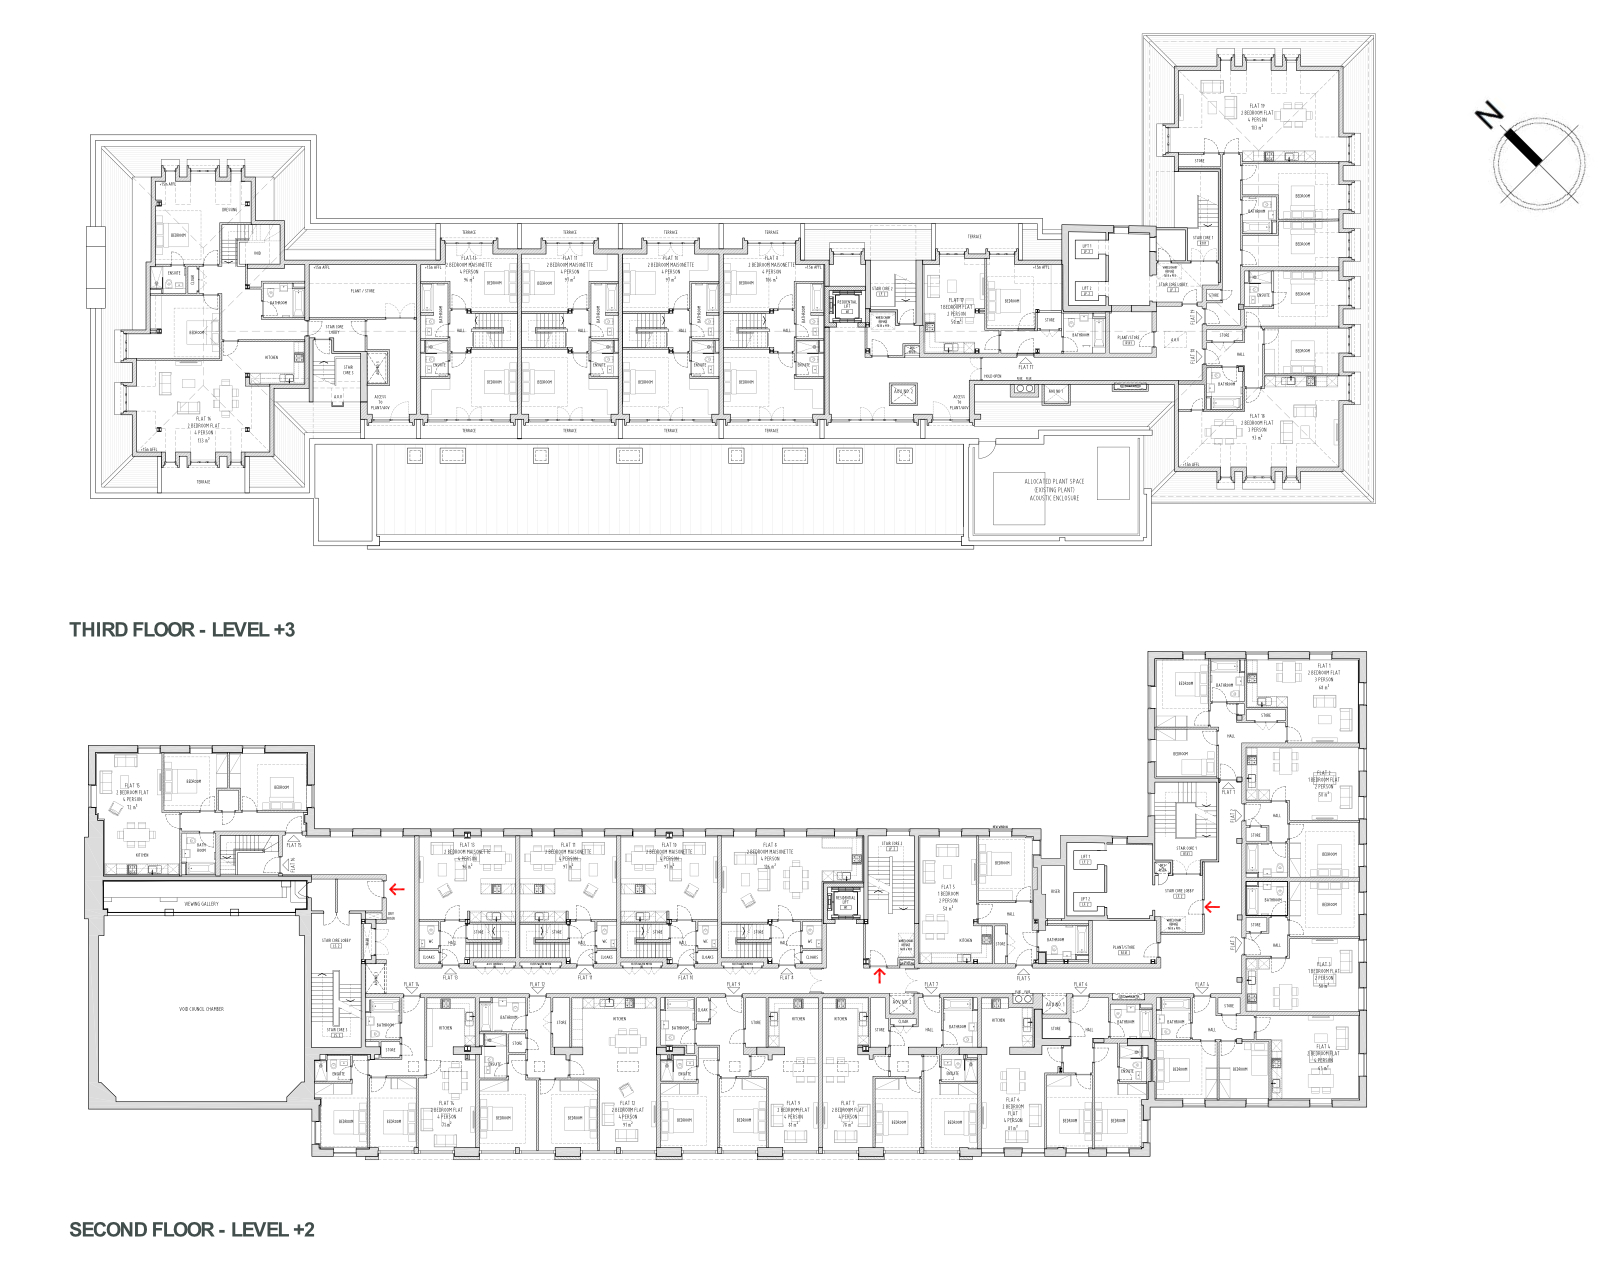 brentwood-council-plans-drawing